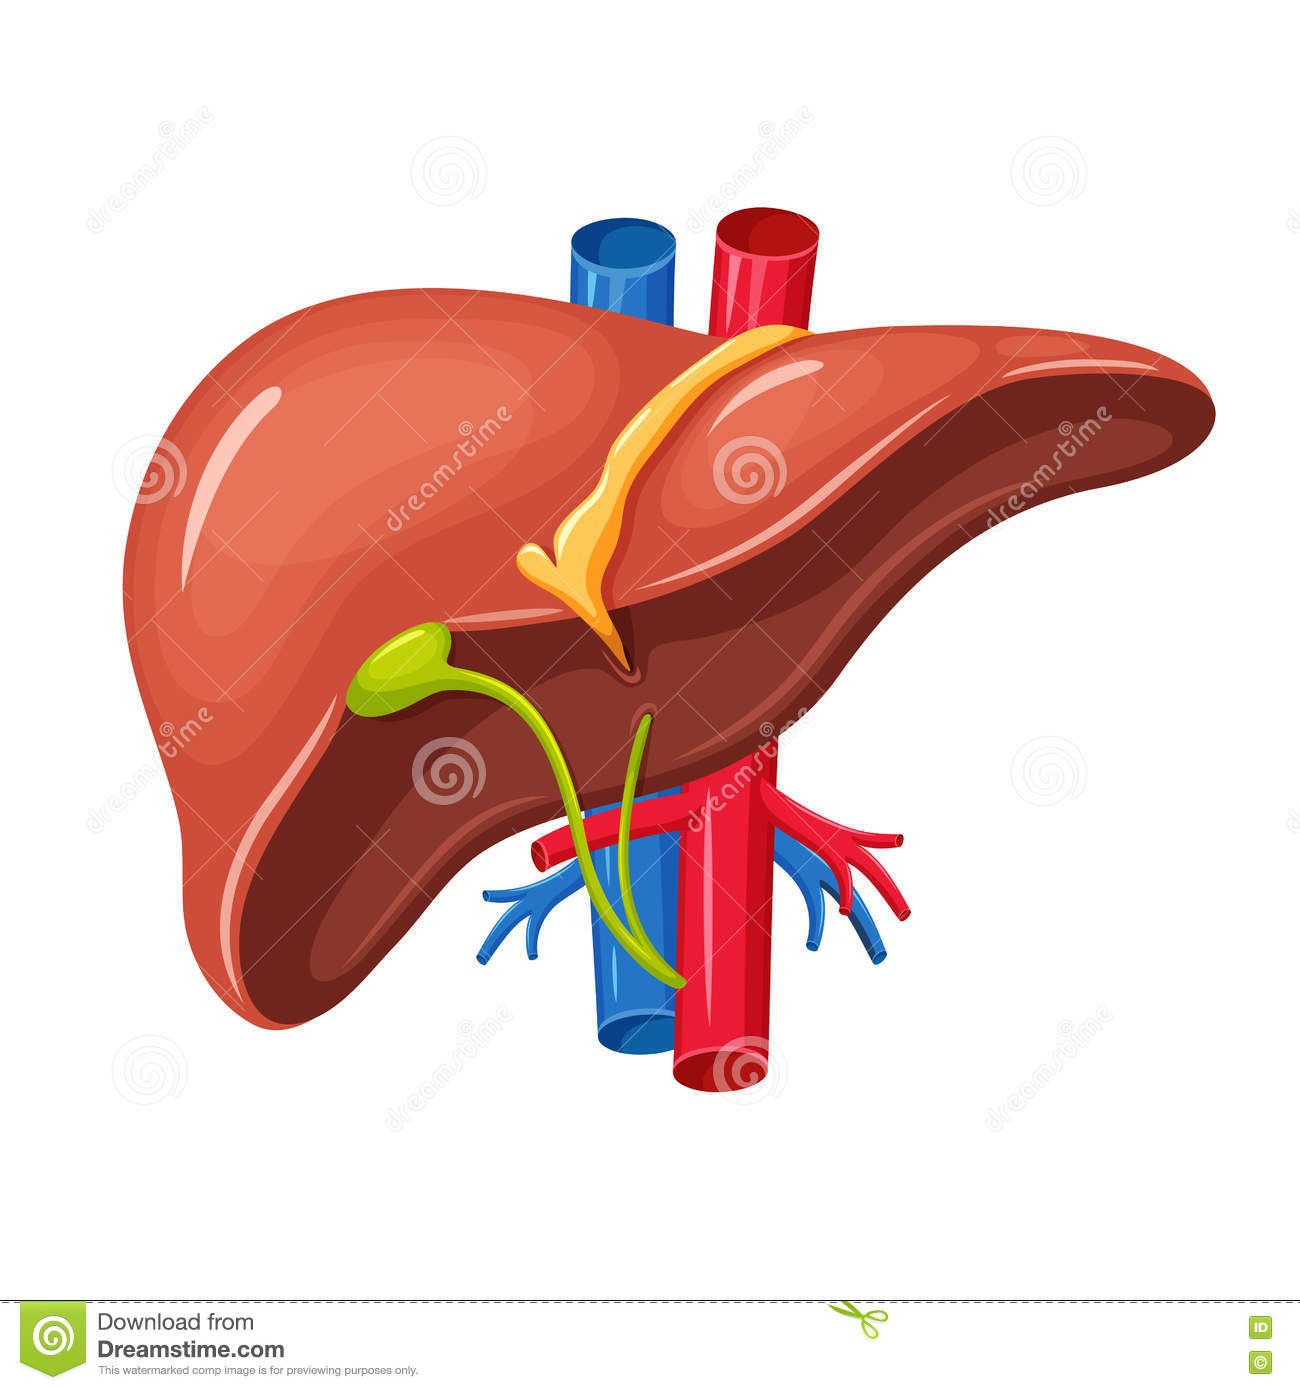 Human liver anatomy stock vector. Illustration of health - 72820293